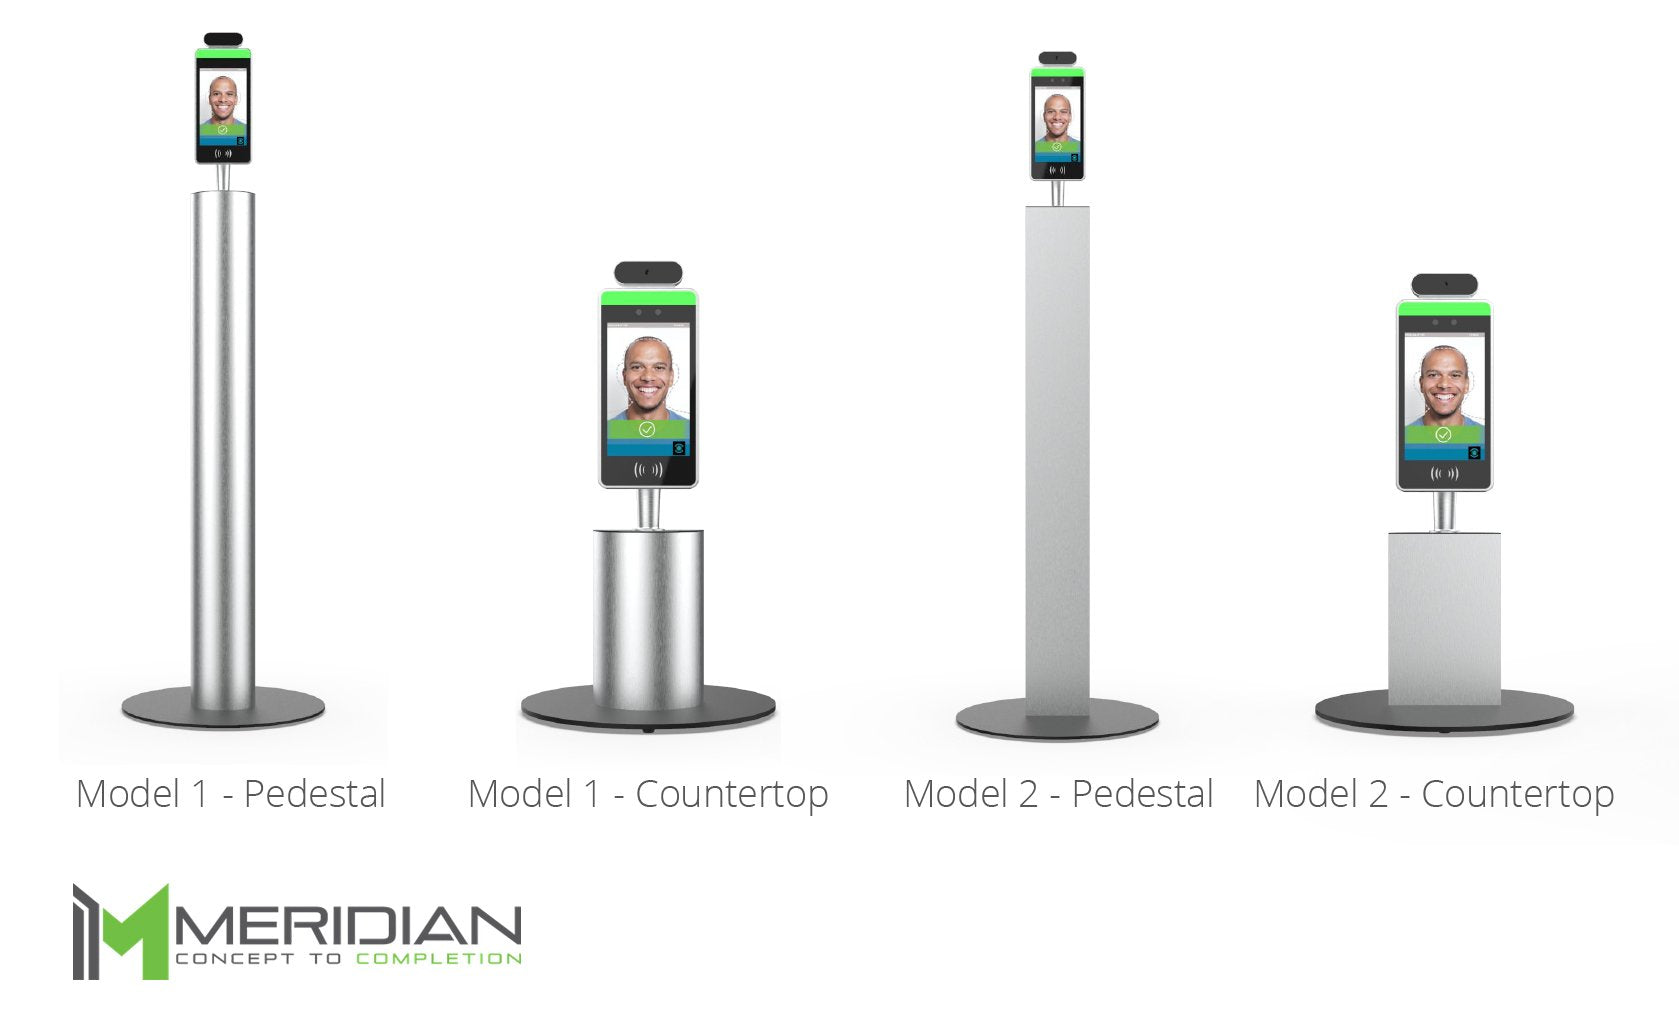 Meridian Personnel Management Kiosk freestanding and countertop configurations